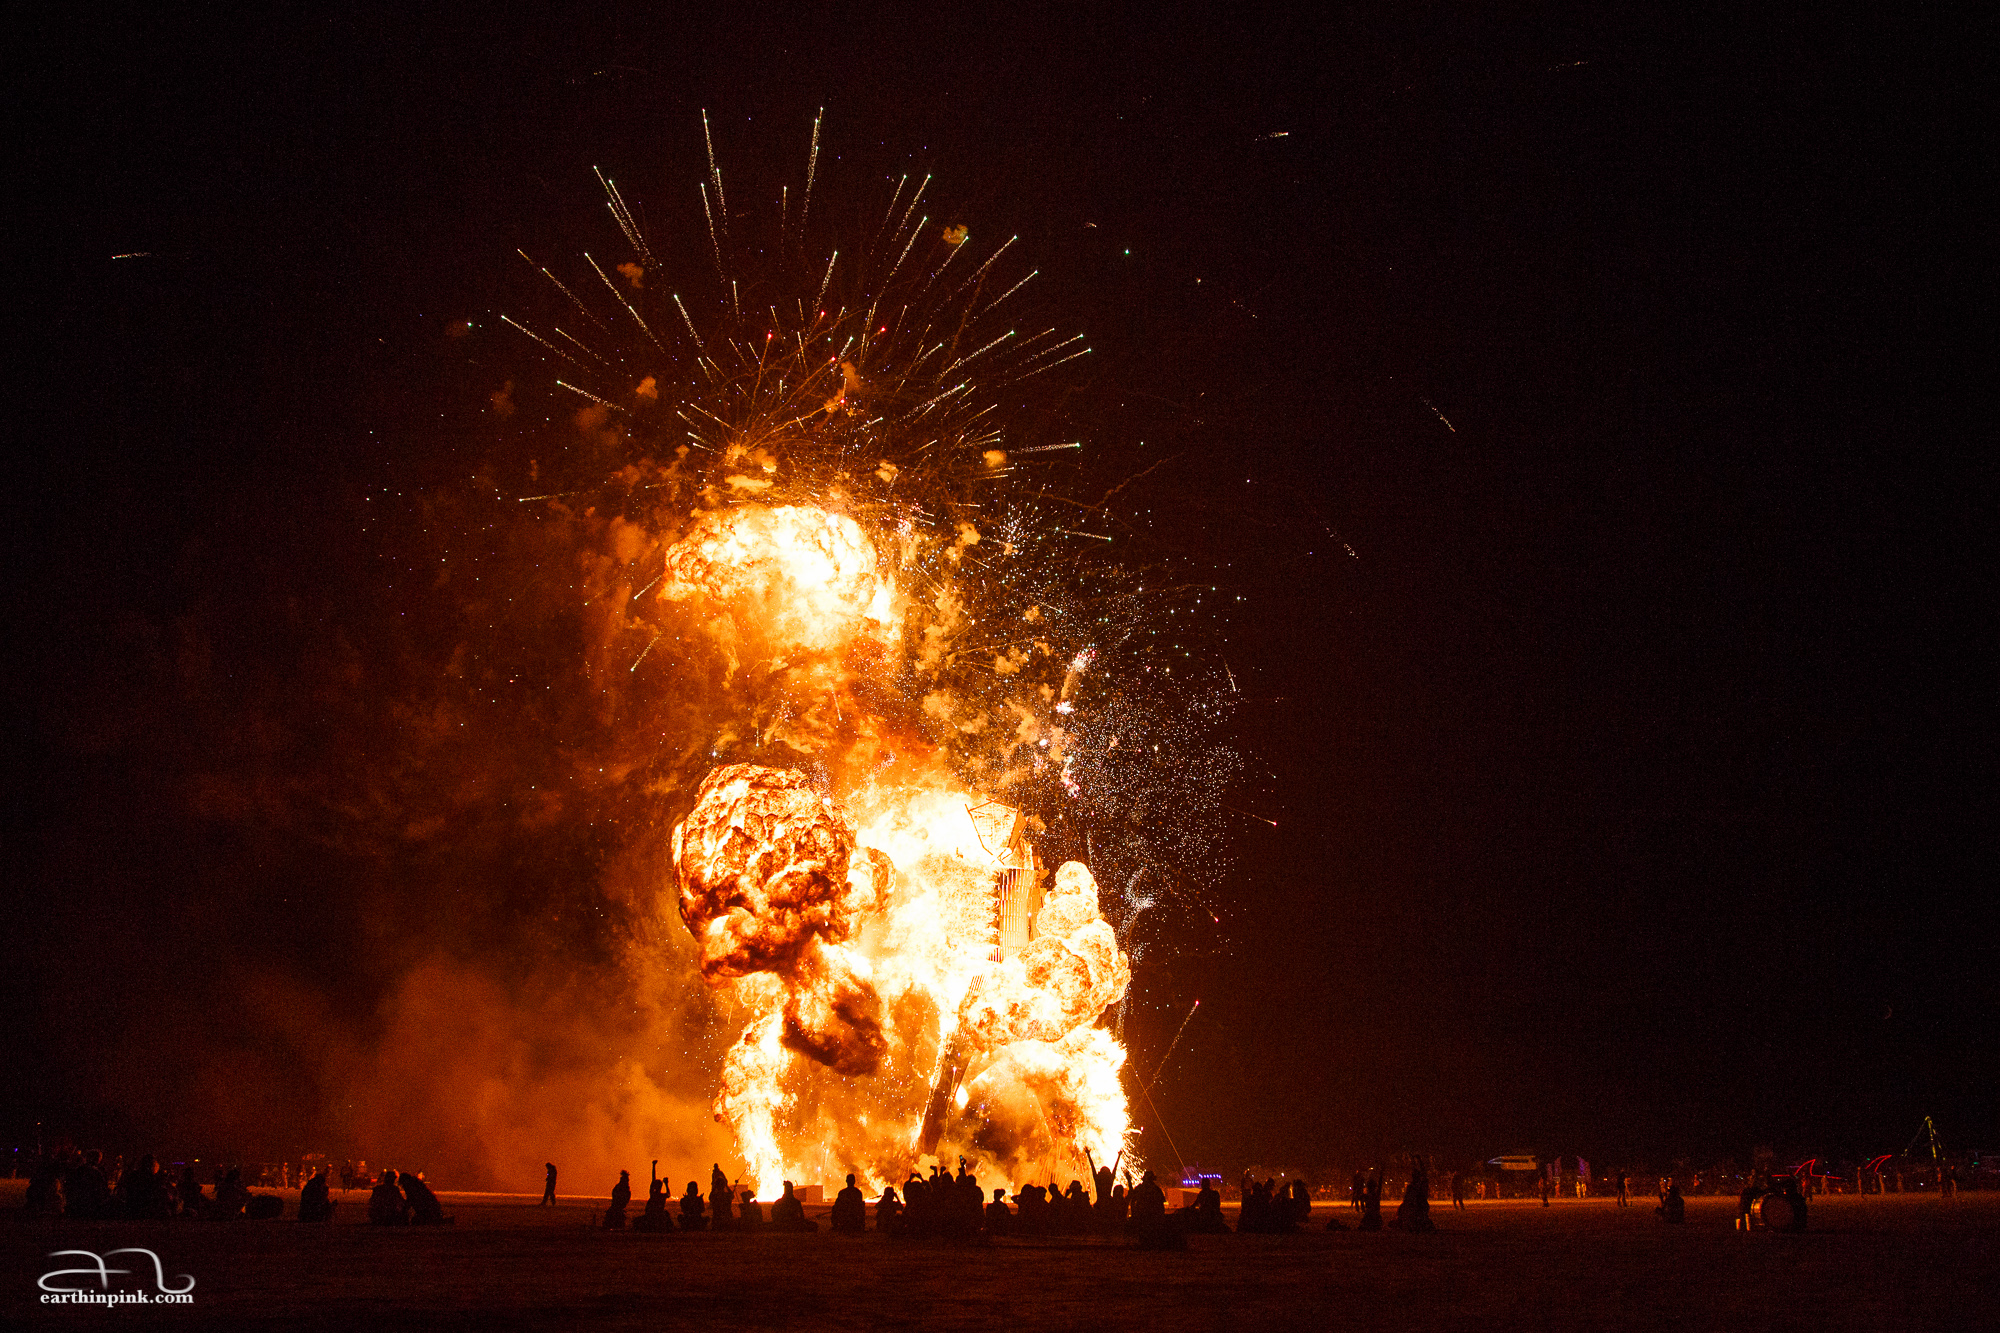 Burning Man 2014 - fireworks in the background, and fire from the Man rising up in a big mushroom cloud.